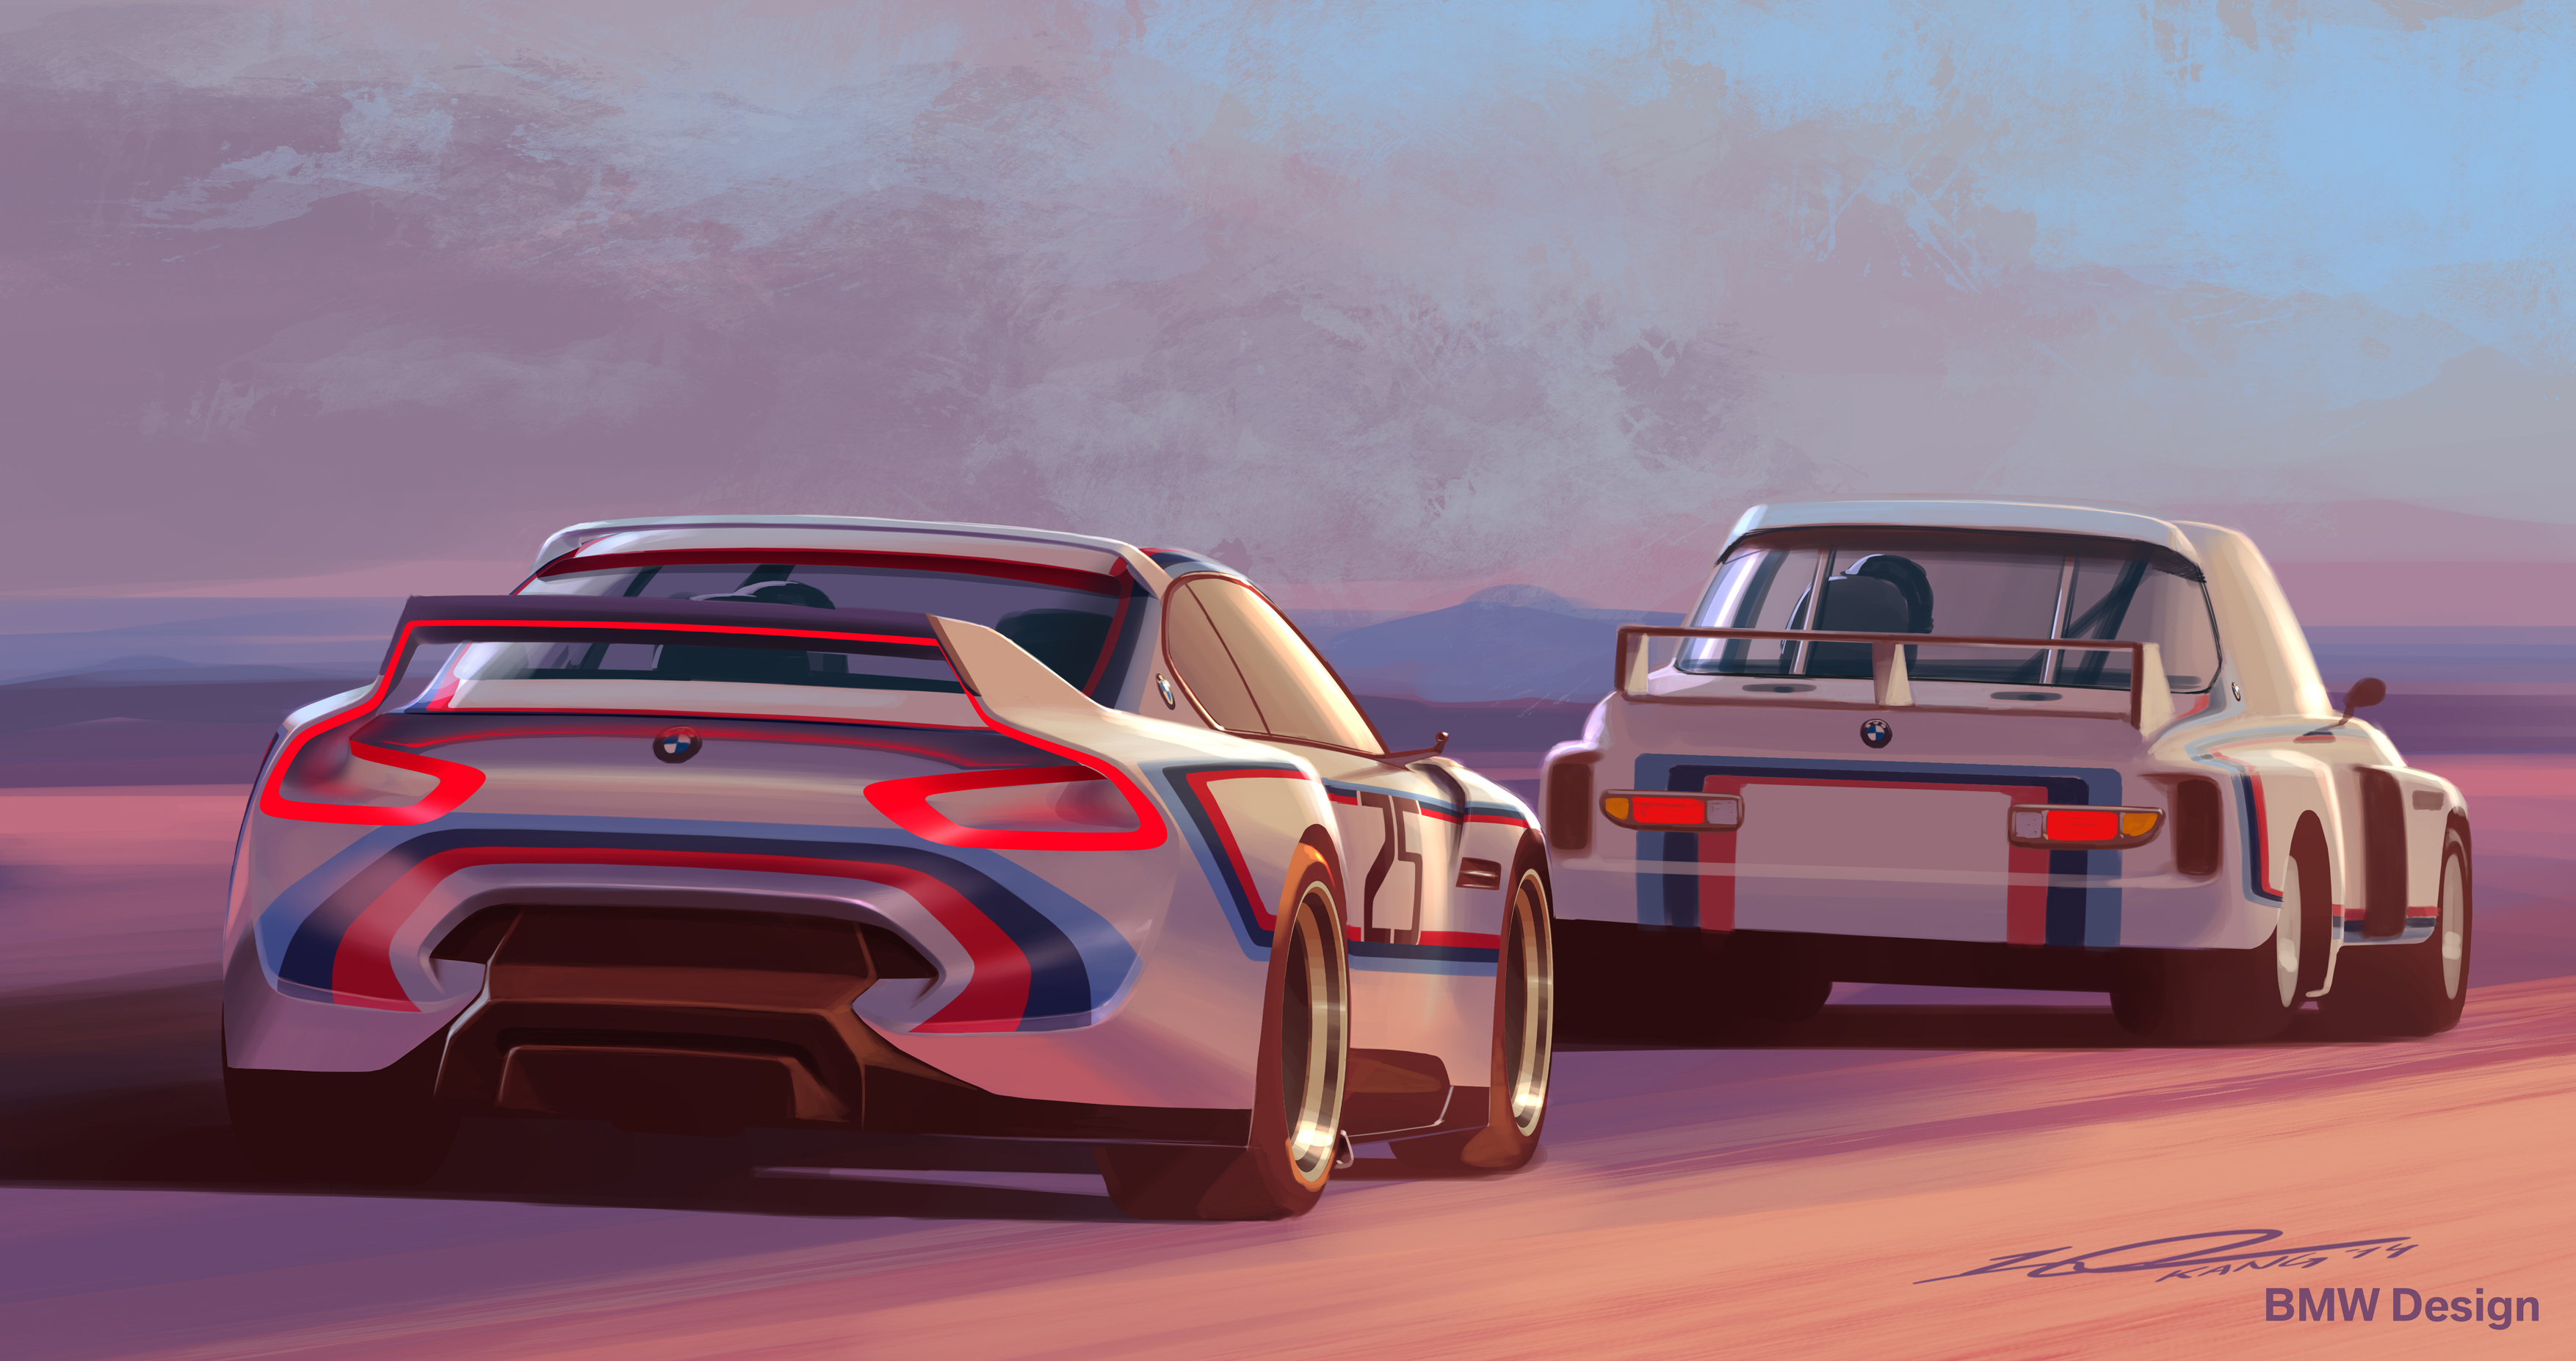 Bmw 3.0 Csl >> Bmw Fixed The 3 0 Csl Hommage Concept Car And Now It Looks Amazing